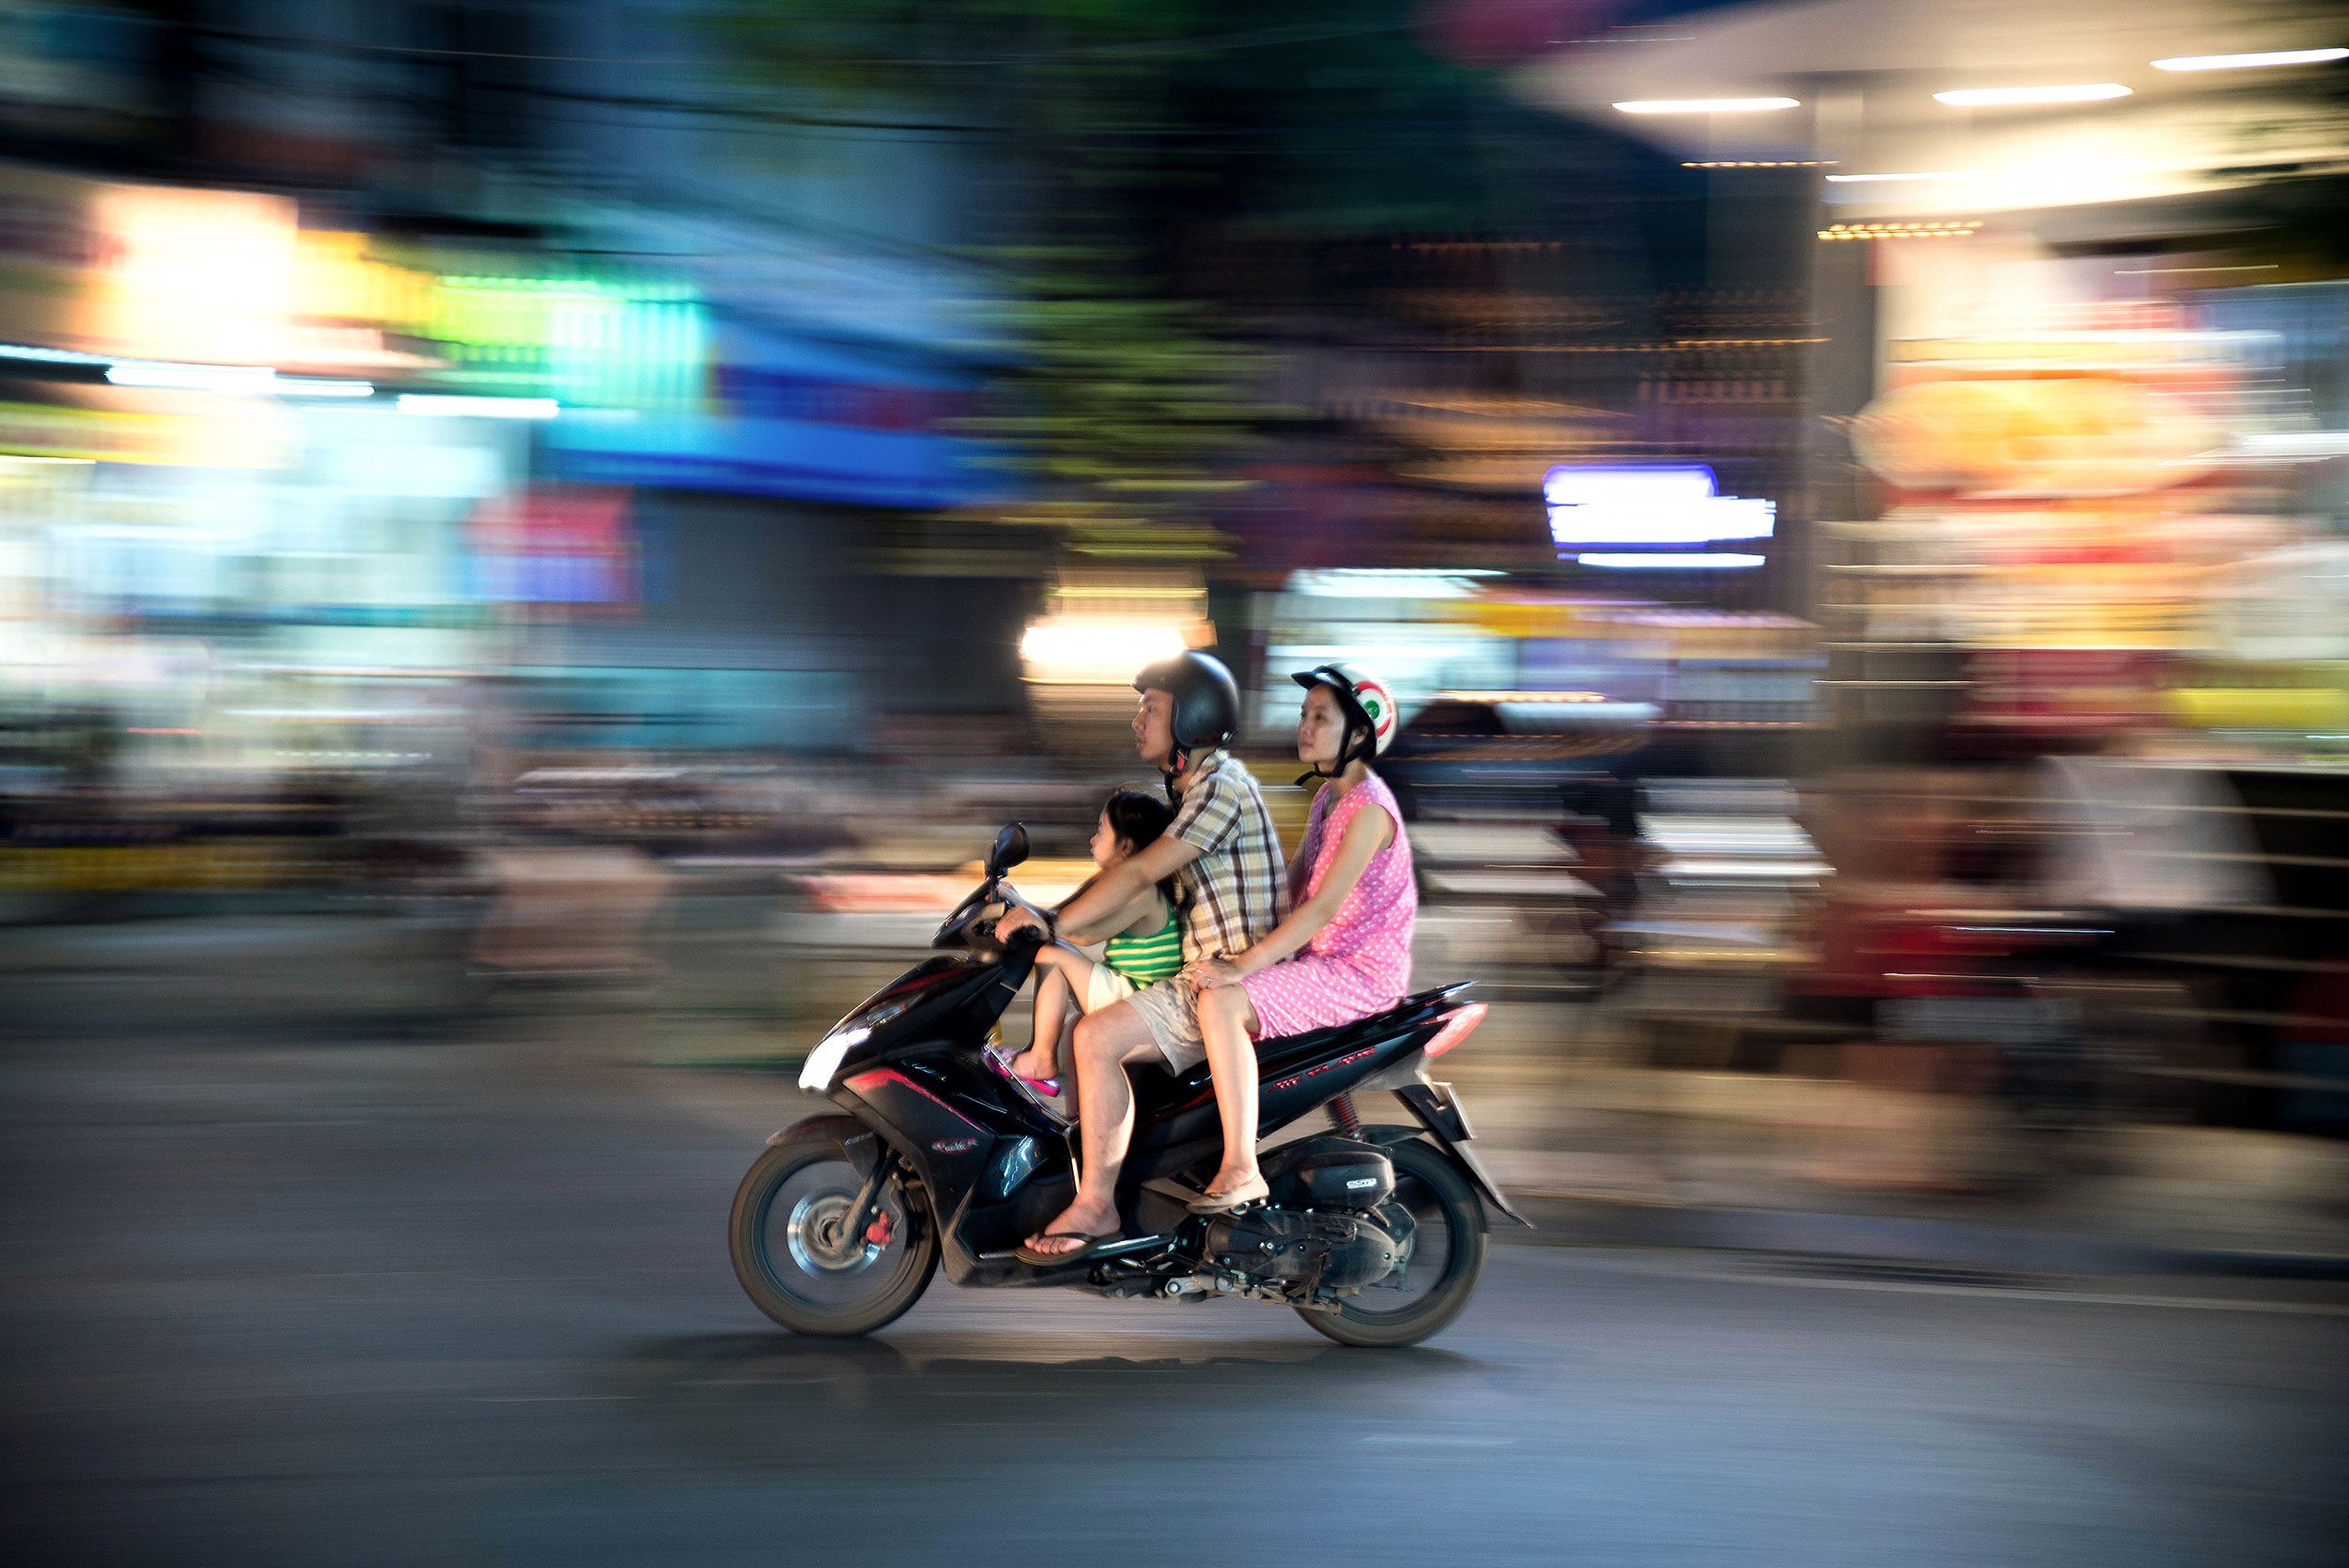 A family rides on a moped together in Hanoi